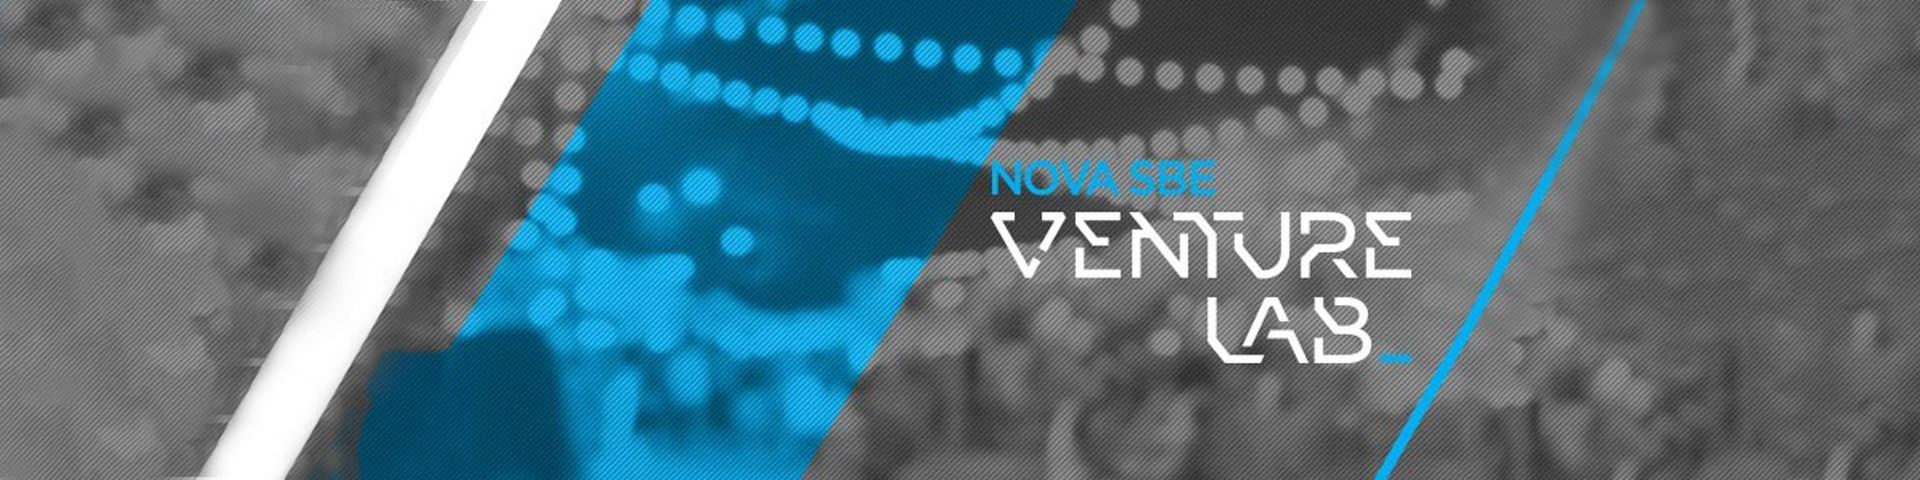 Nova SBE Venture Lab launches its acceleration program